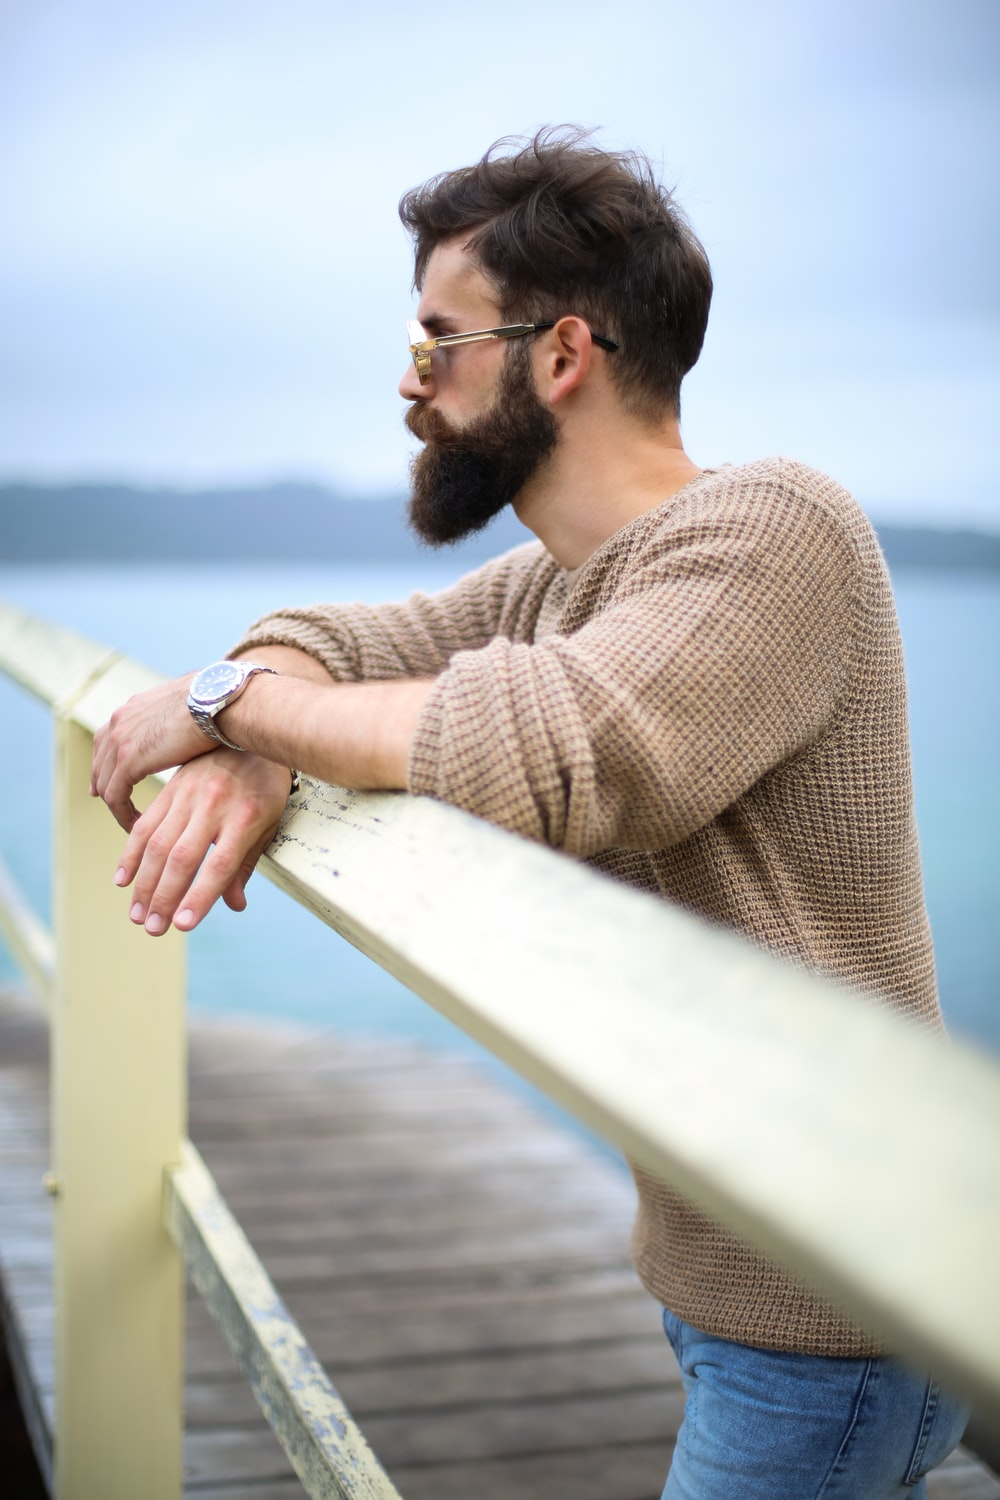 Beard Oil-How To Use And Apply?